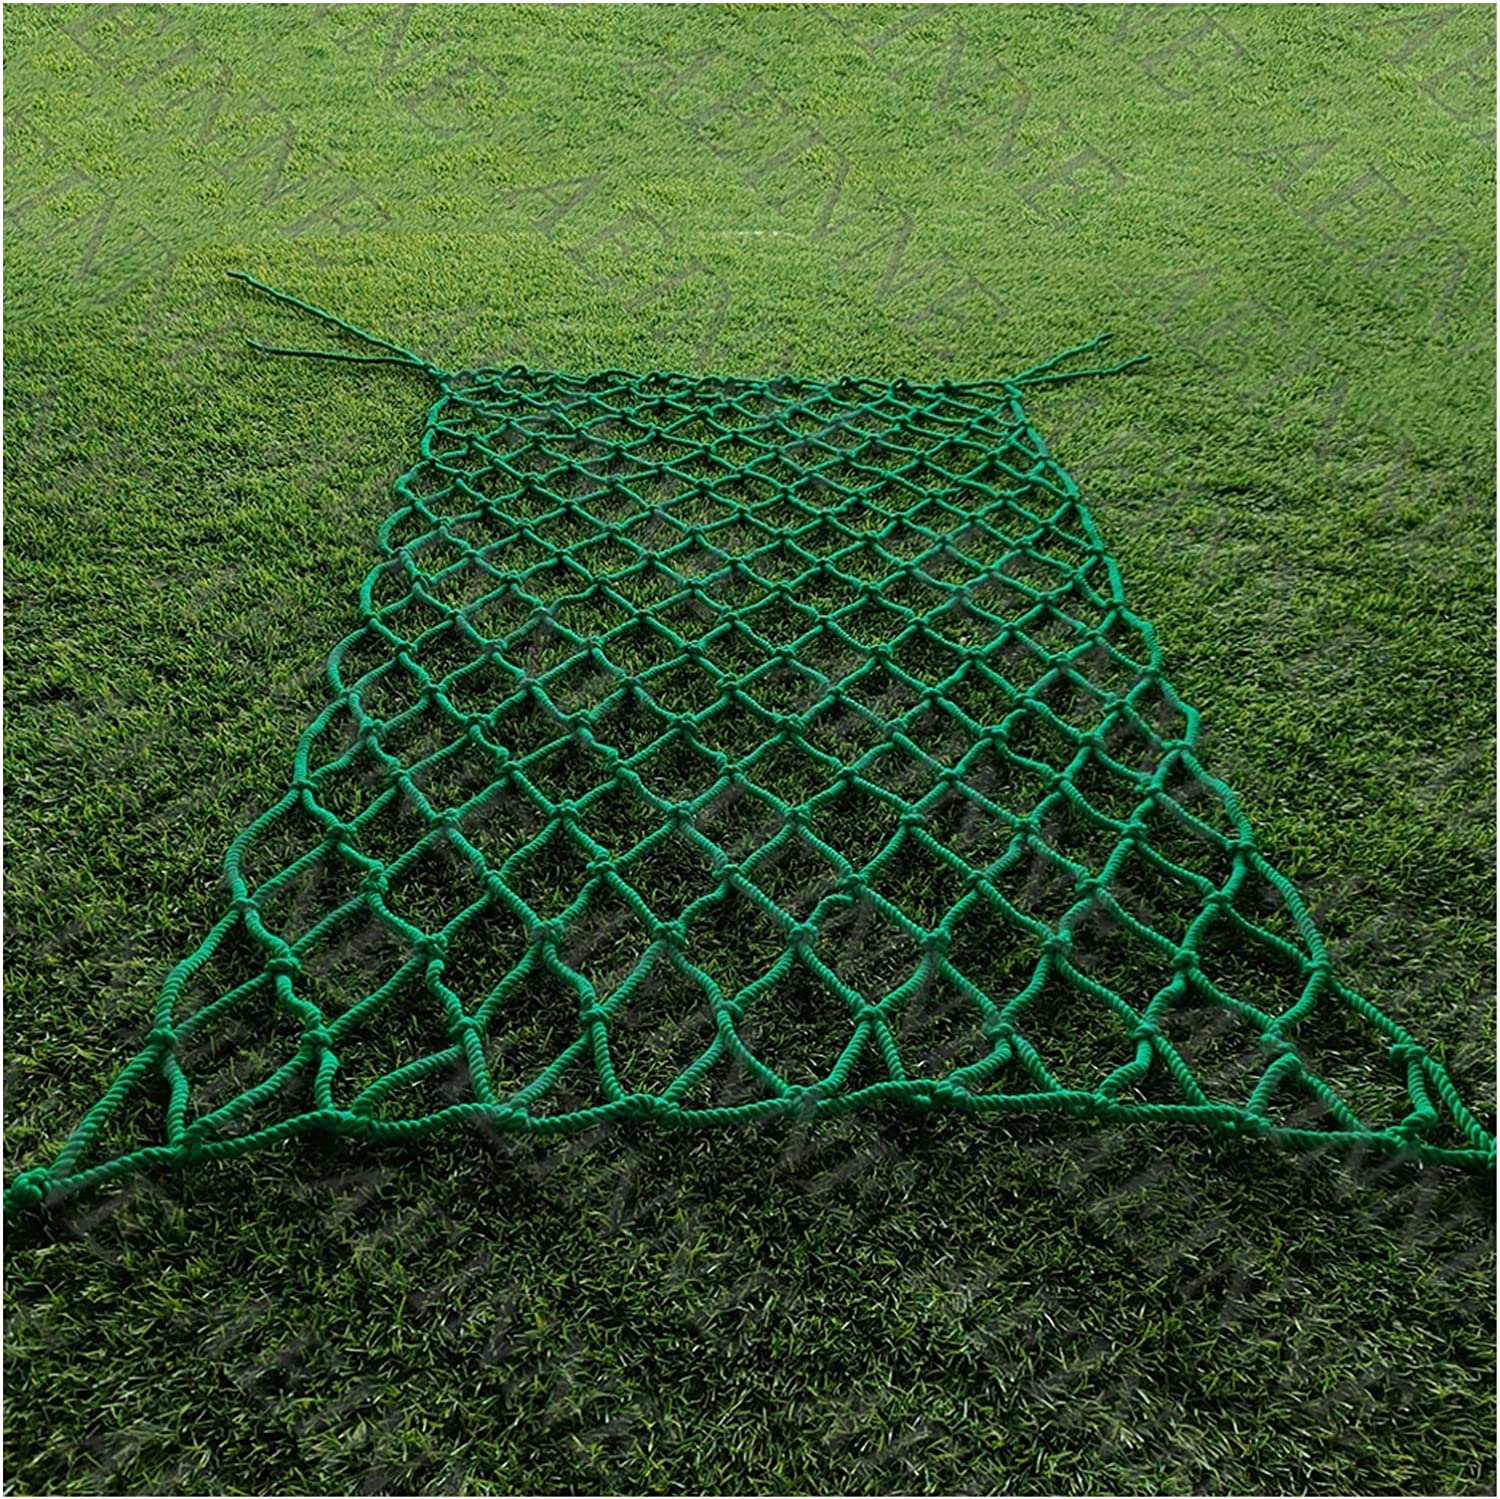 FTTHYAG Green Netting,Safety Net Safety Netting for Kids Green